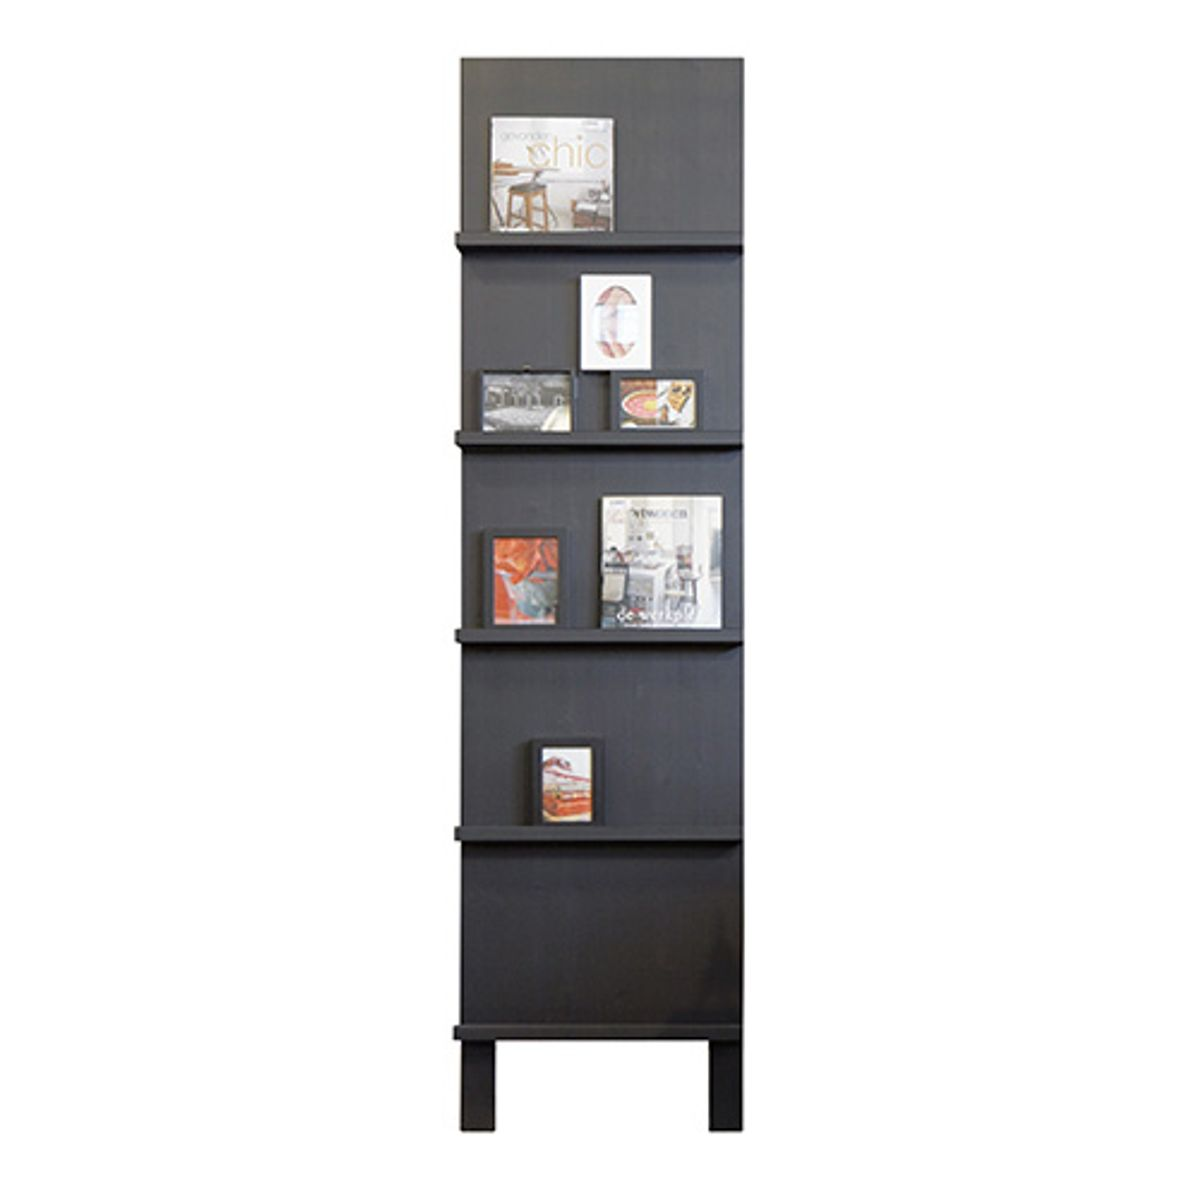 Etagère inclinée porte magazines en pin massif FSC Display - noir